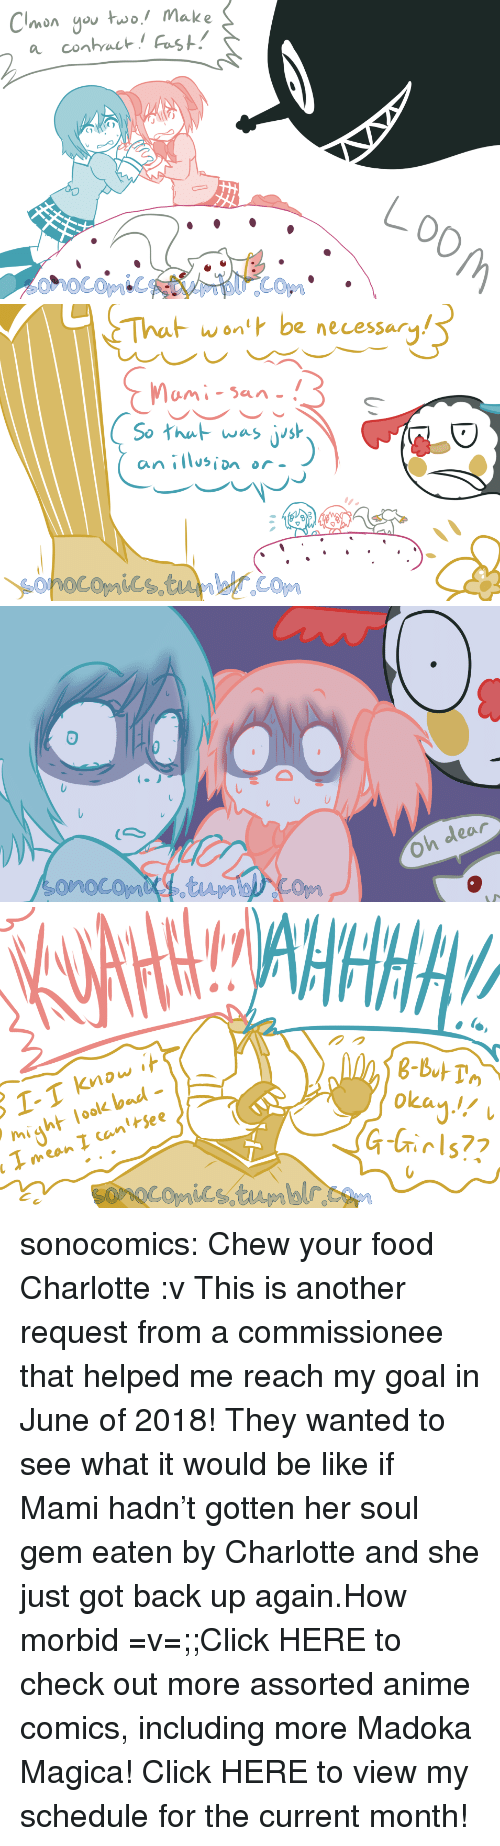 isin: Clonyo uwo! Make   wont be necessary  So hu was jish  an isin or  フ   Oh dear   ol-  might look bad-  okan!  eow  רו sonocomics:  Chew your food Charlotte :v This is another request from a commissionee that helped me reach my goal in June of 2018!  They wanted to see what it would be like if Mami hadn't gotten her soul gem eaten by Charlotte and she just got back up again.How morbid =v=;;Click HERE to check out more assorted anime comics, including more Madoka Magica! Click HERE to view my schedule for the current month!